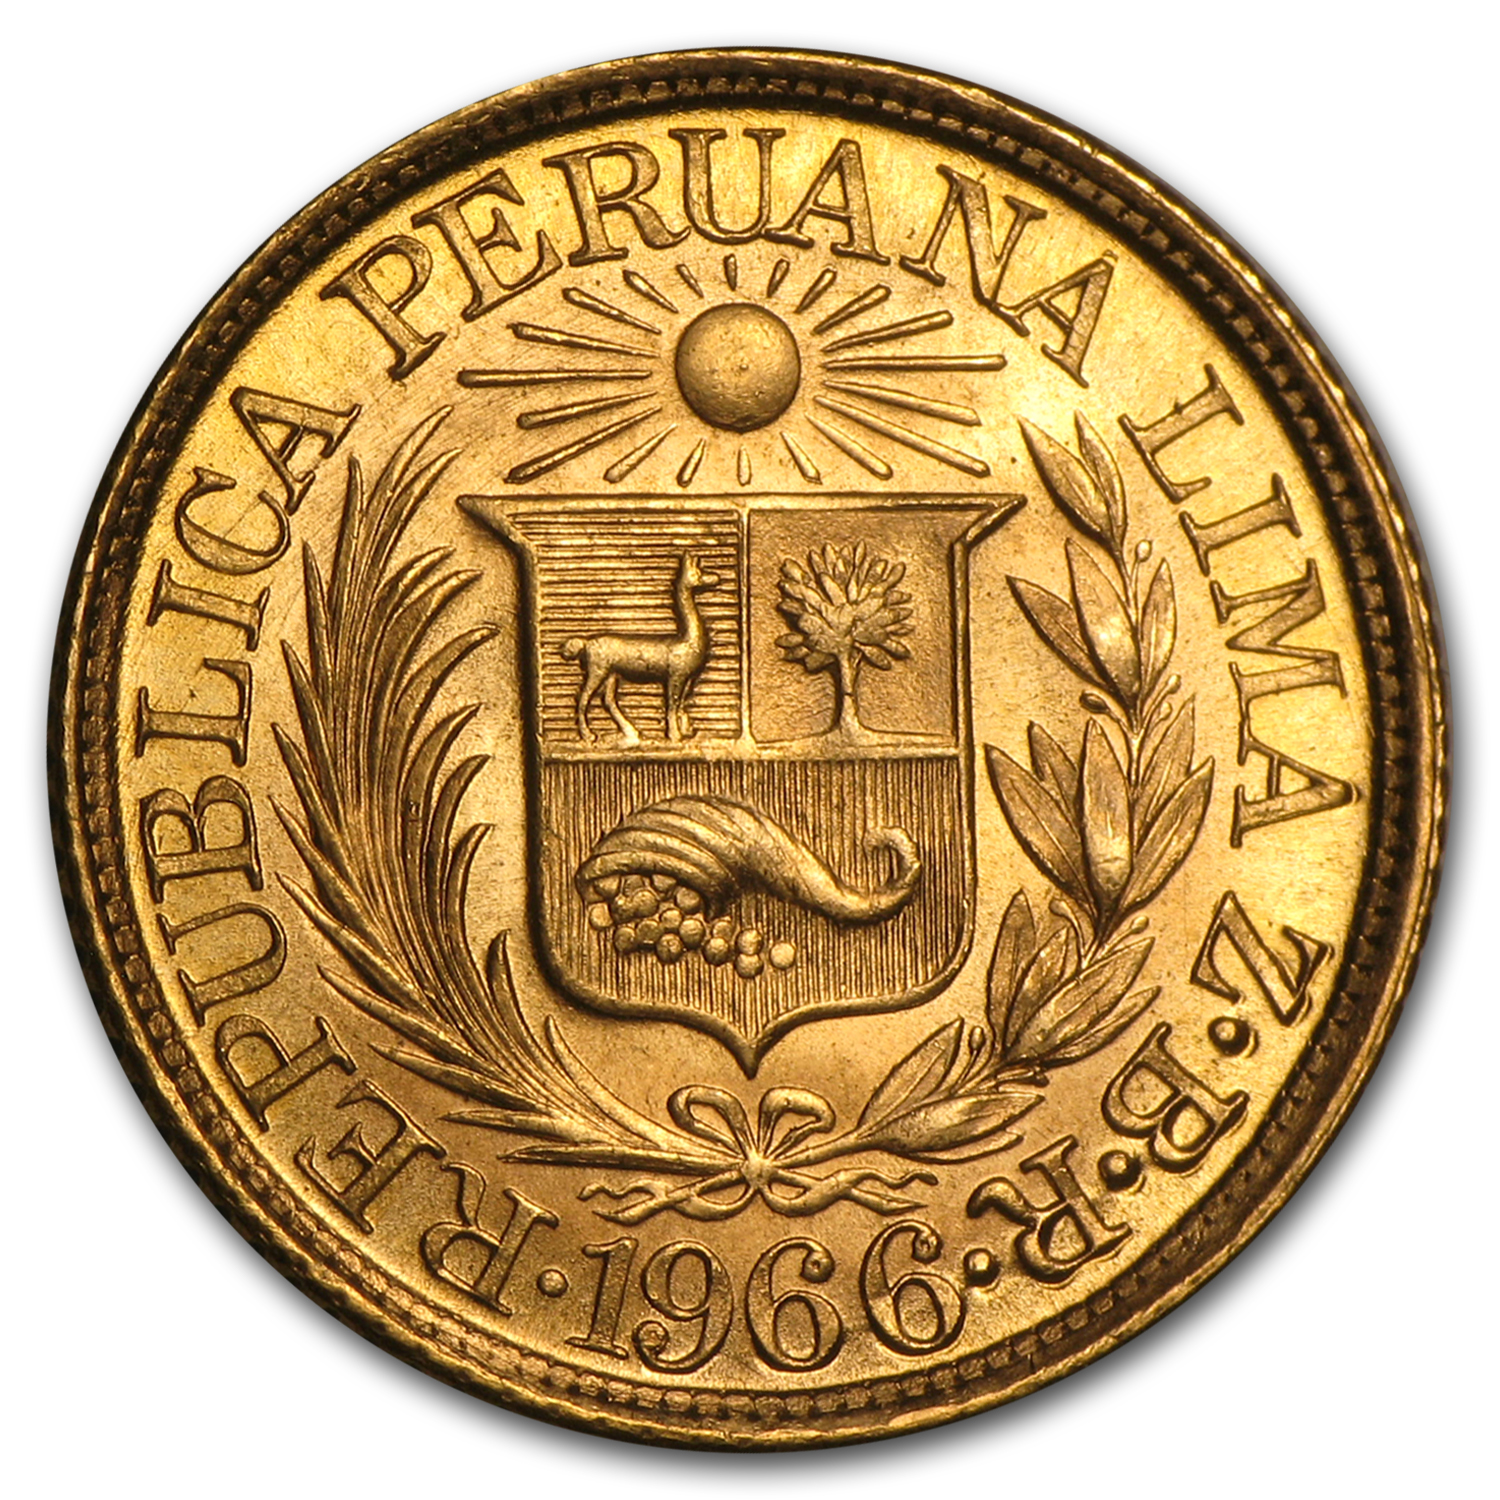 1902-1969 Peru Gold 1/2 Libra AU or Better (AGW 0.1177, Random)